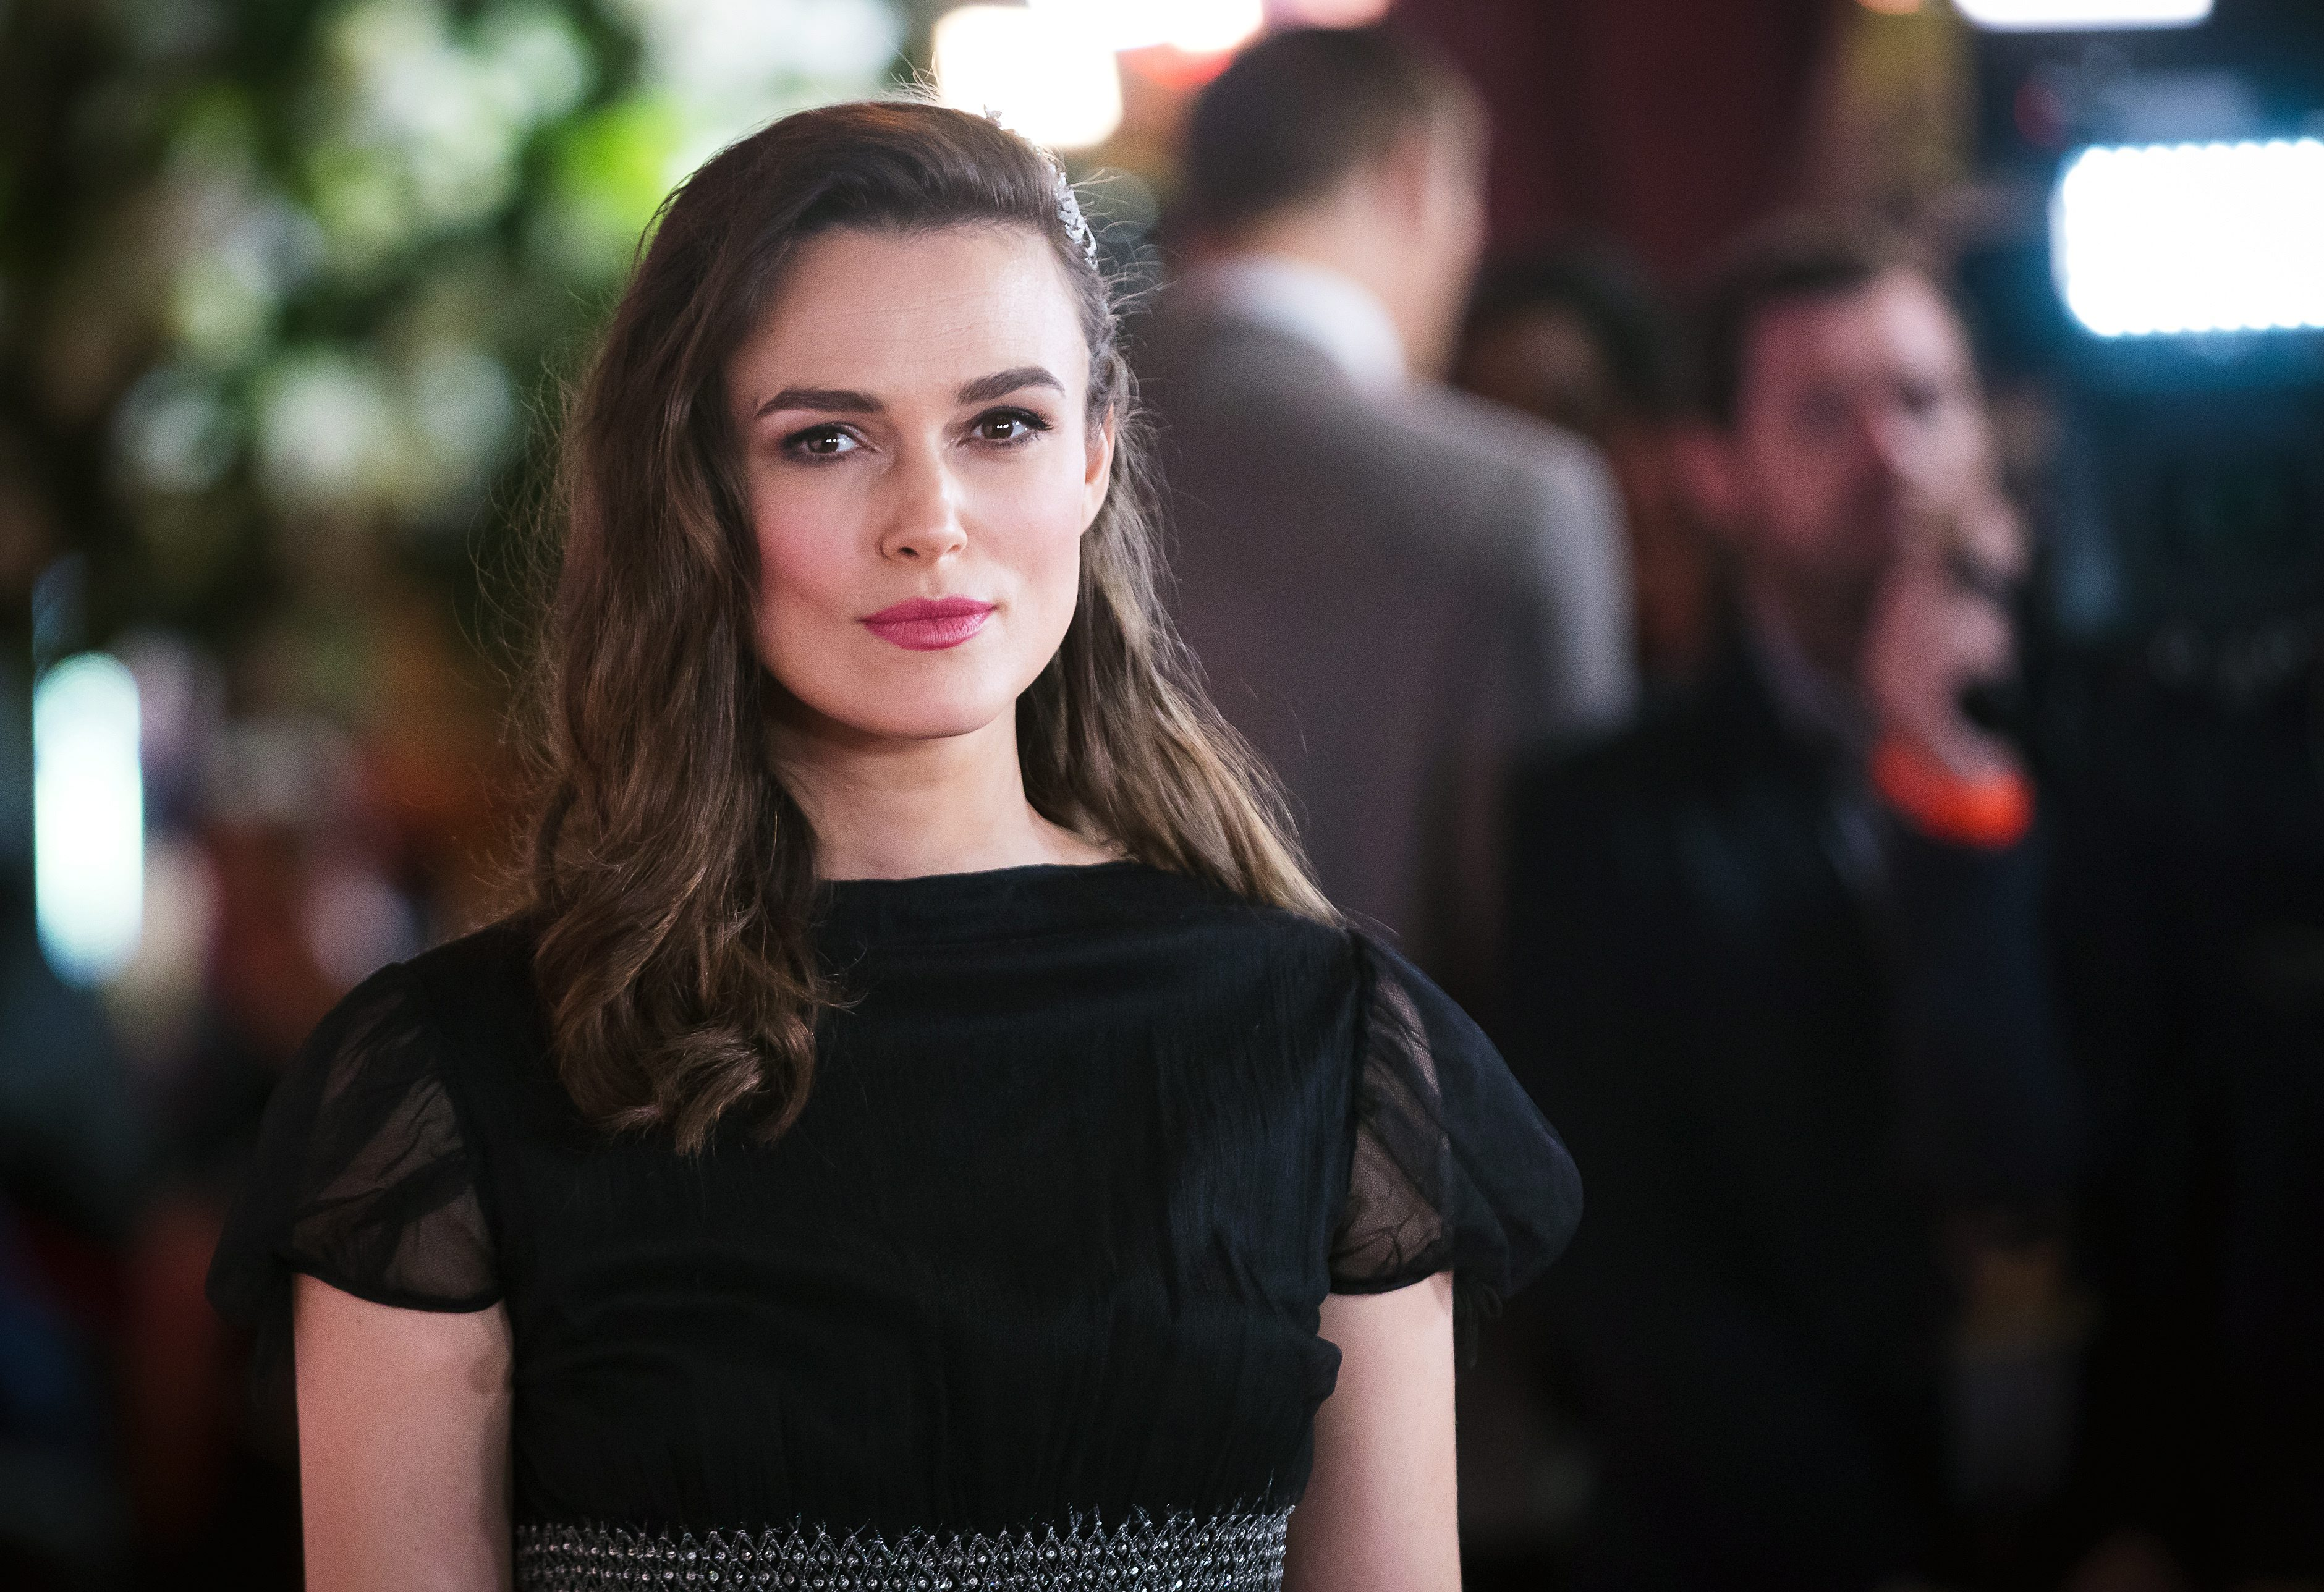 Keira Knightley Is No Longer Comfortable With Onscreen Nudity —Especially When The Director Is Male